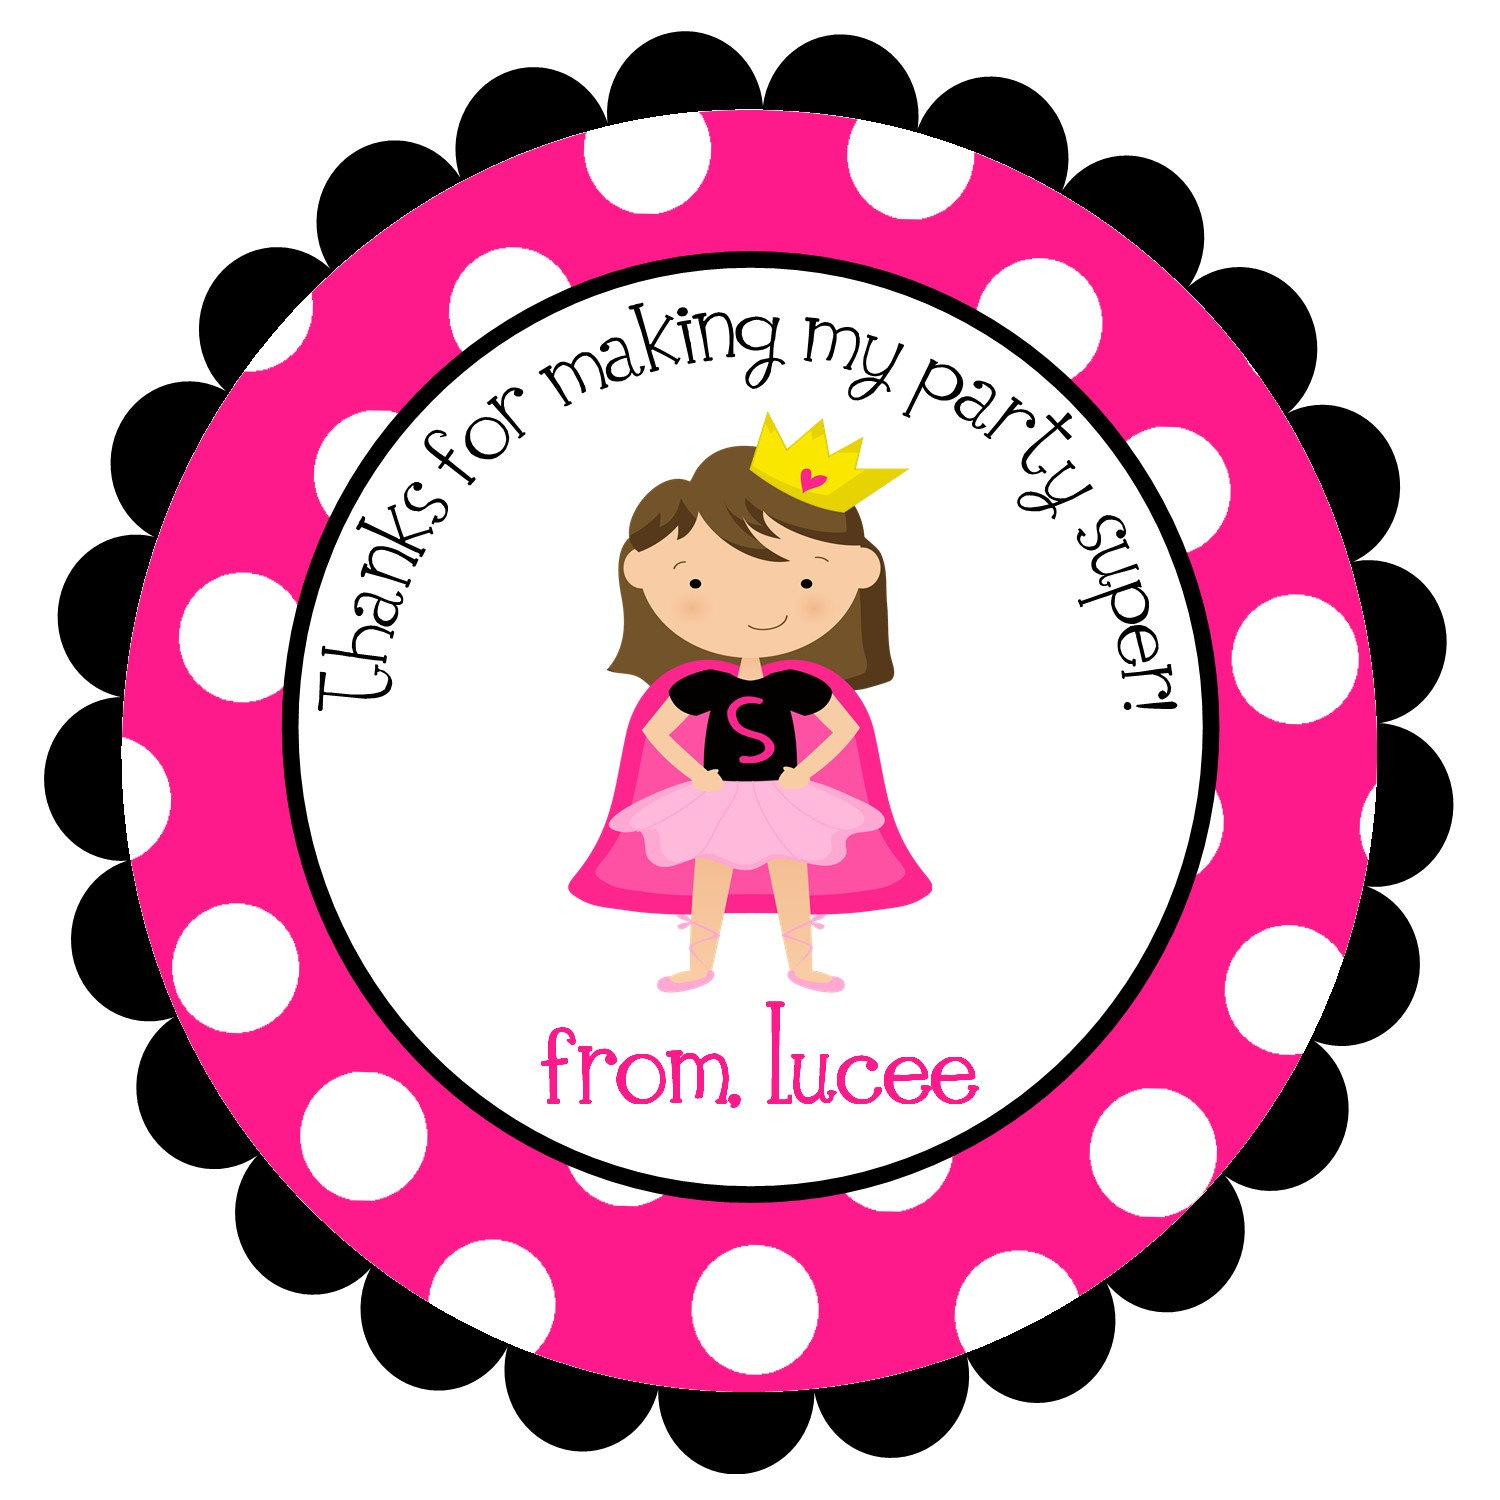 Custom Stickers Adelaide Round Wall Decals Round Stickers Printing Australia